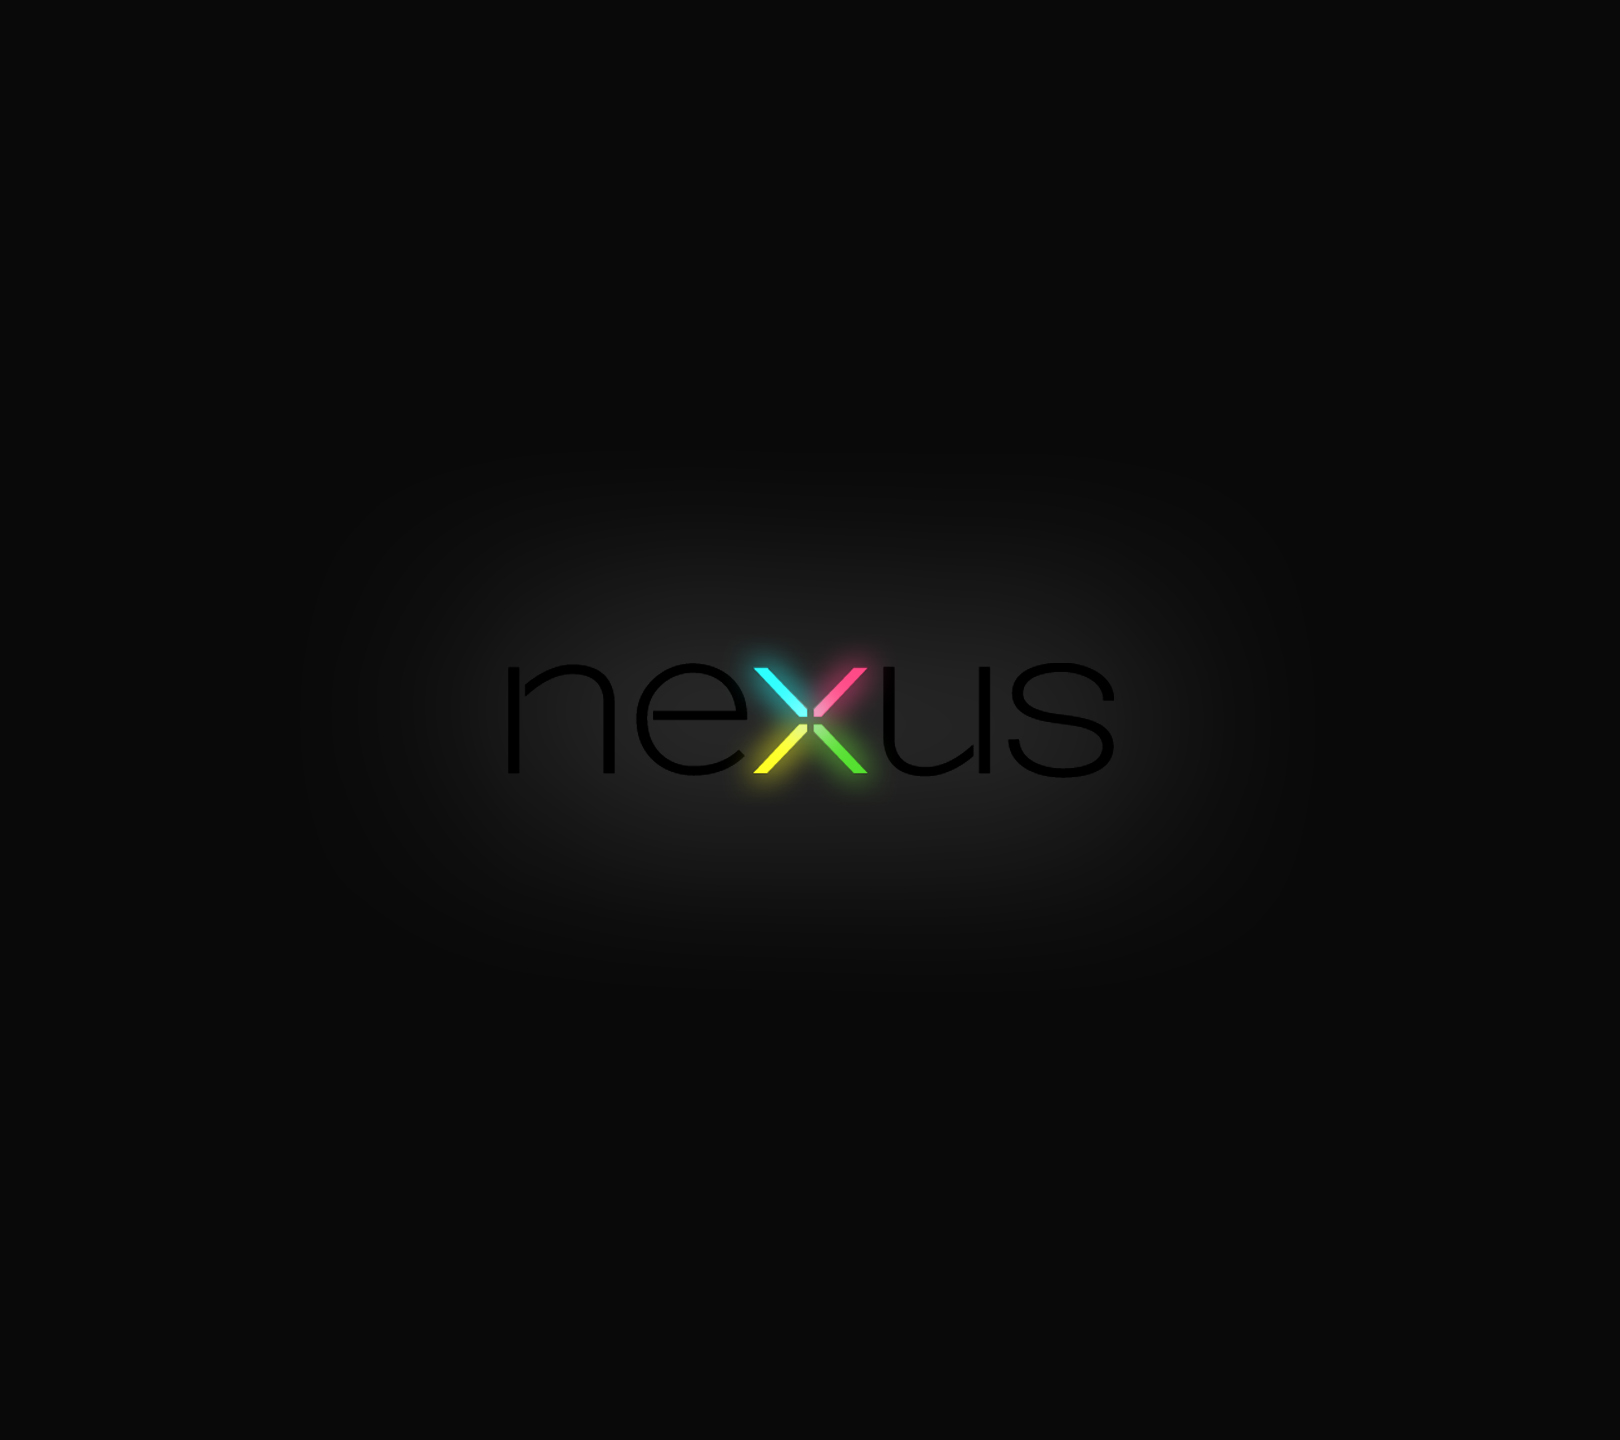 nexus live wallpaper for desktop - photo #10